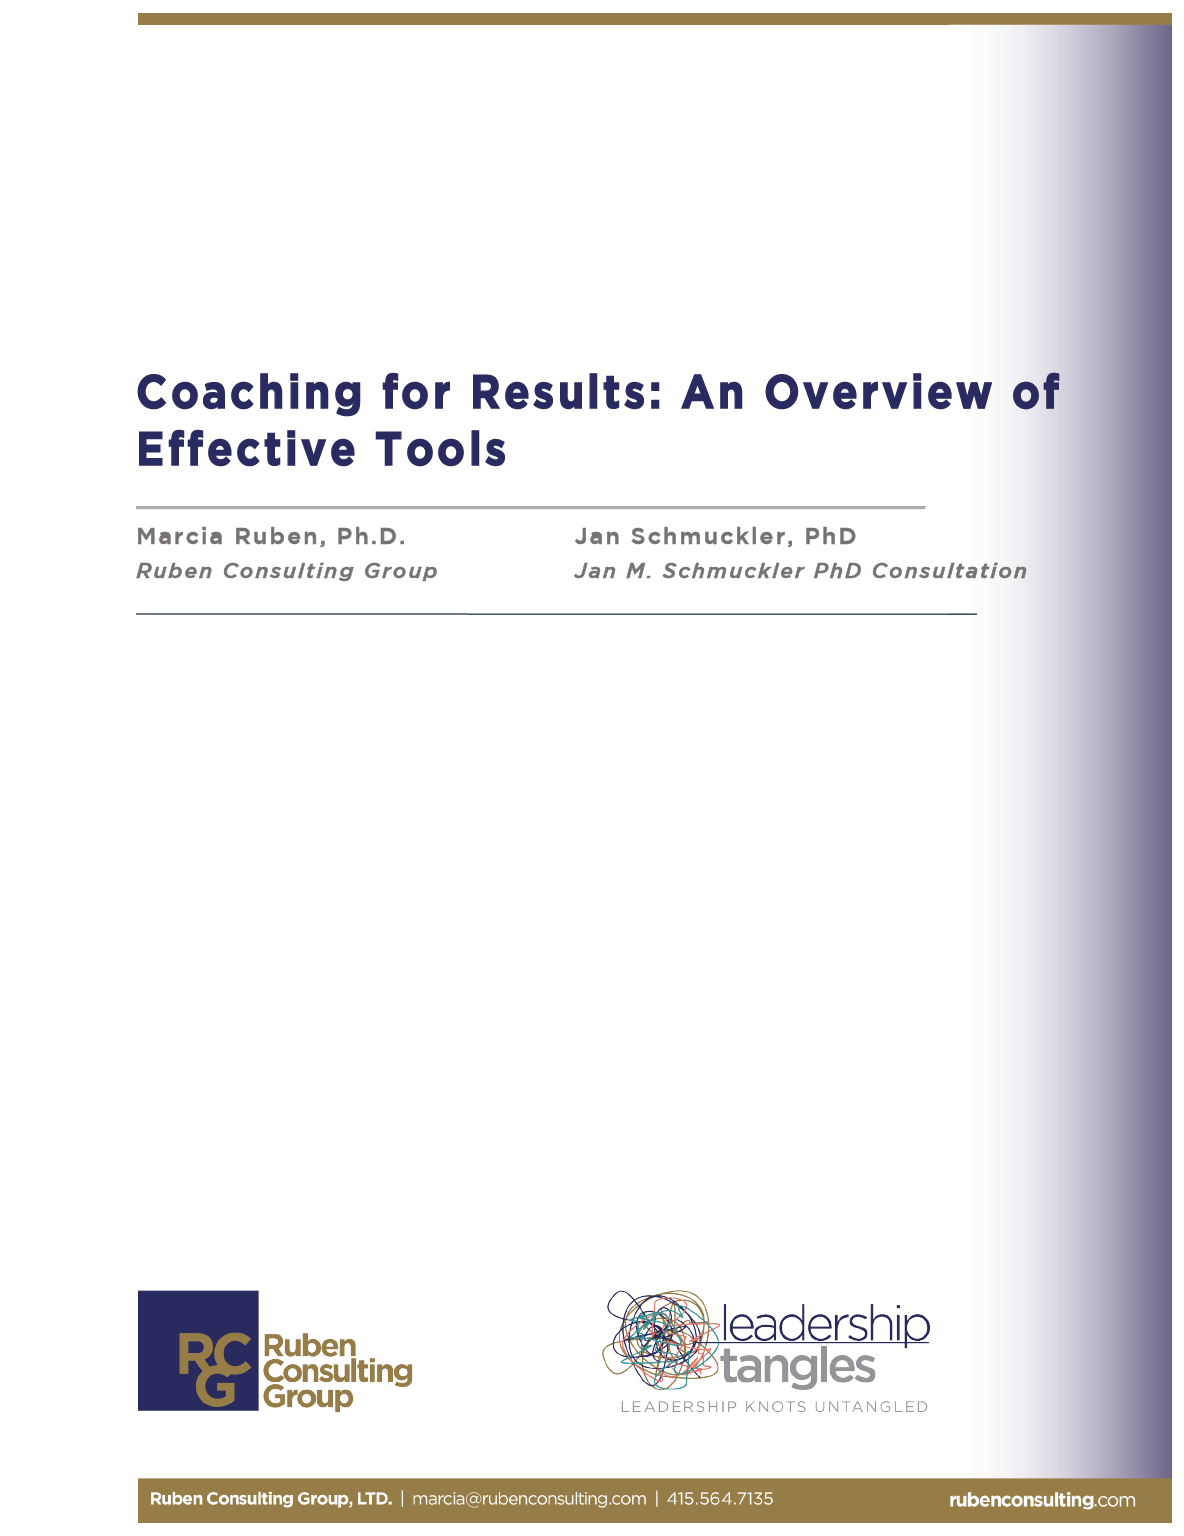 Coaching for Results: An Overview of Effective Tools